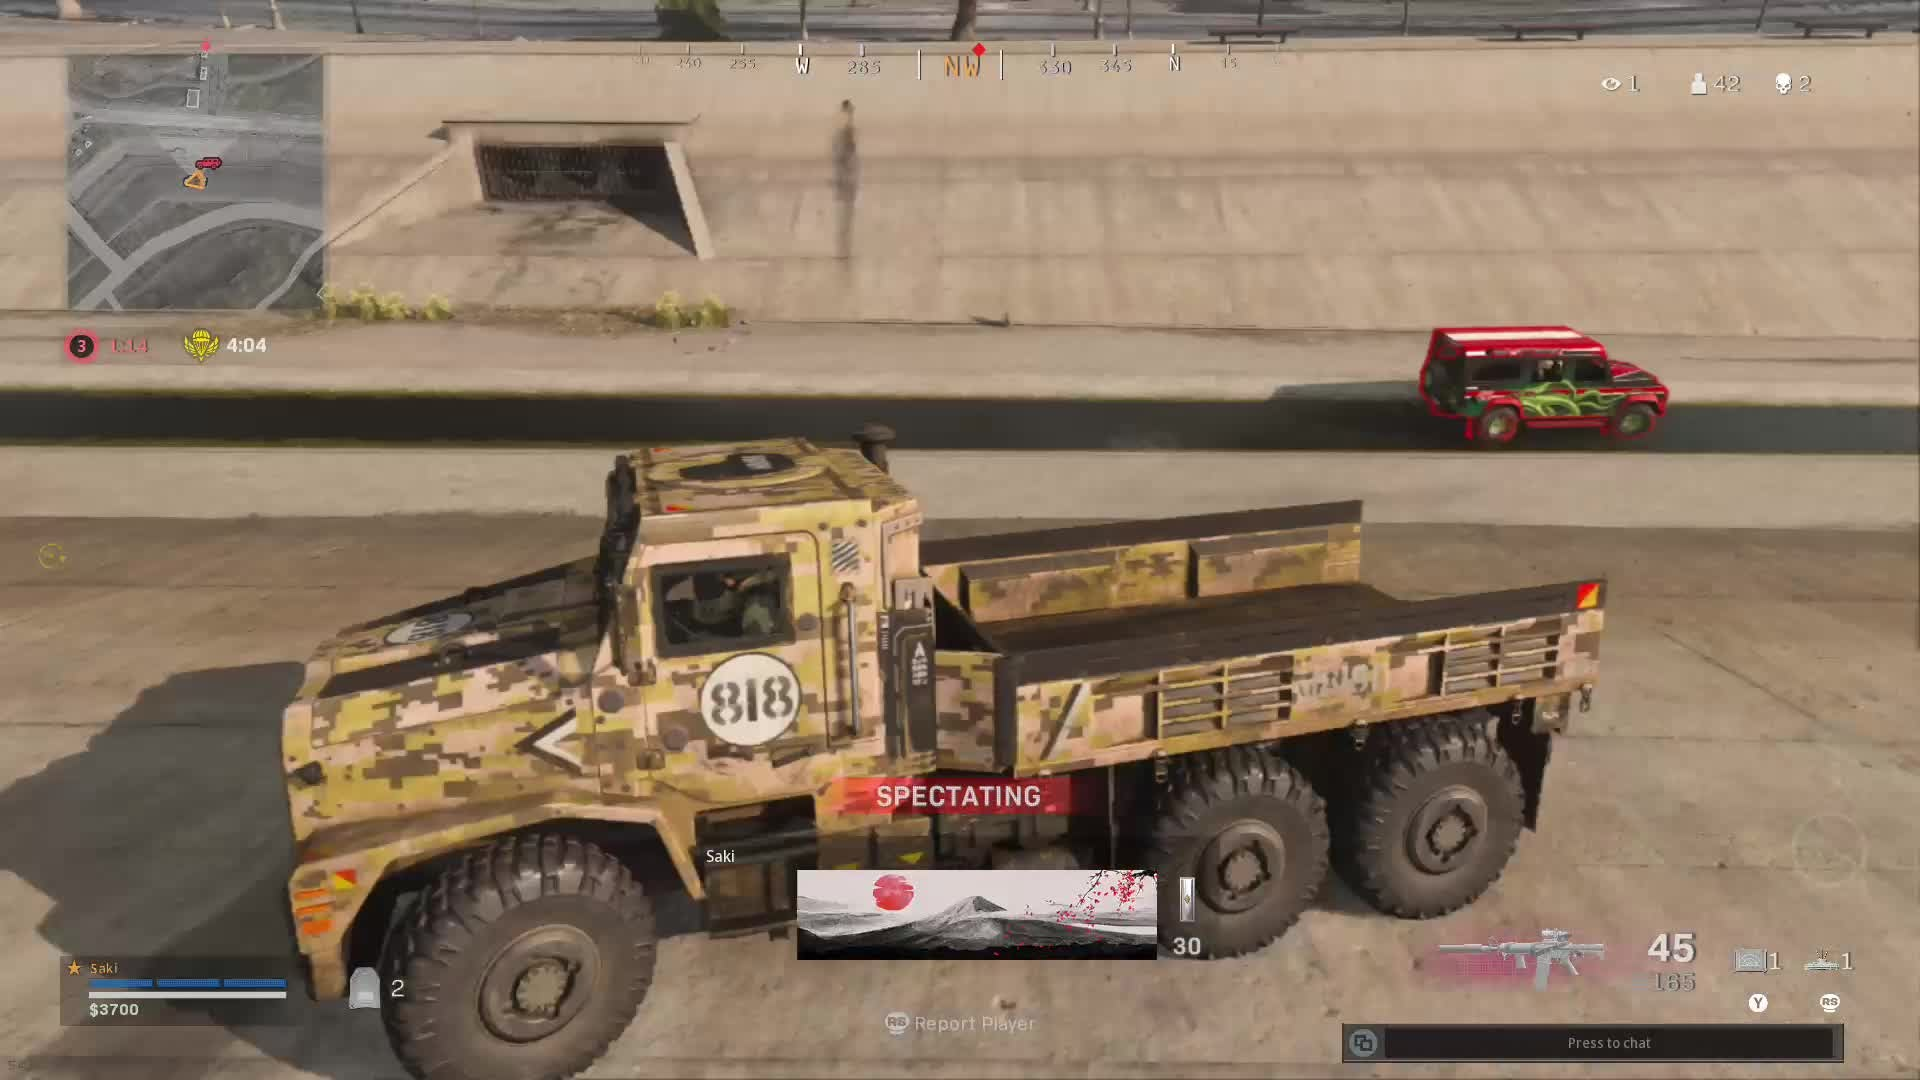 Call of Duty: General - What in the actual F*CK am I spectating?? 😆 🚚🚙💥 video cover image 0